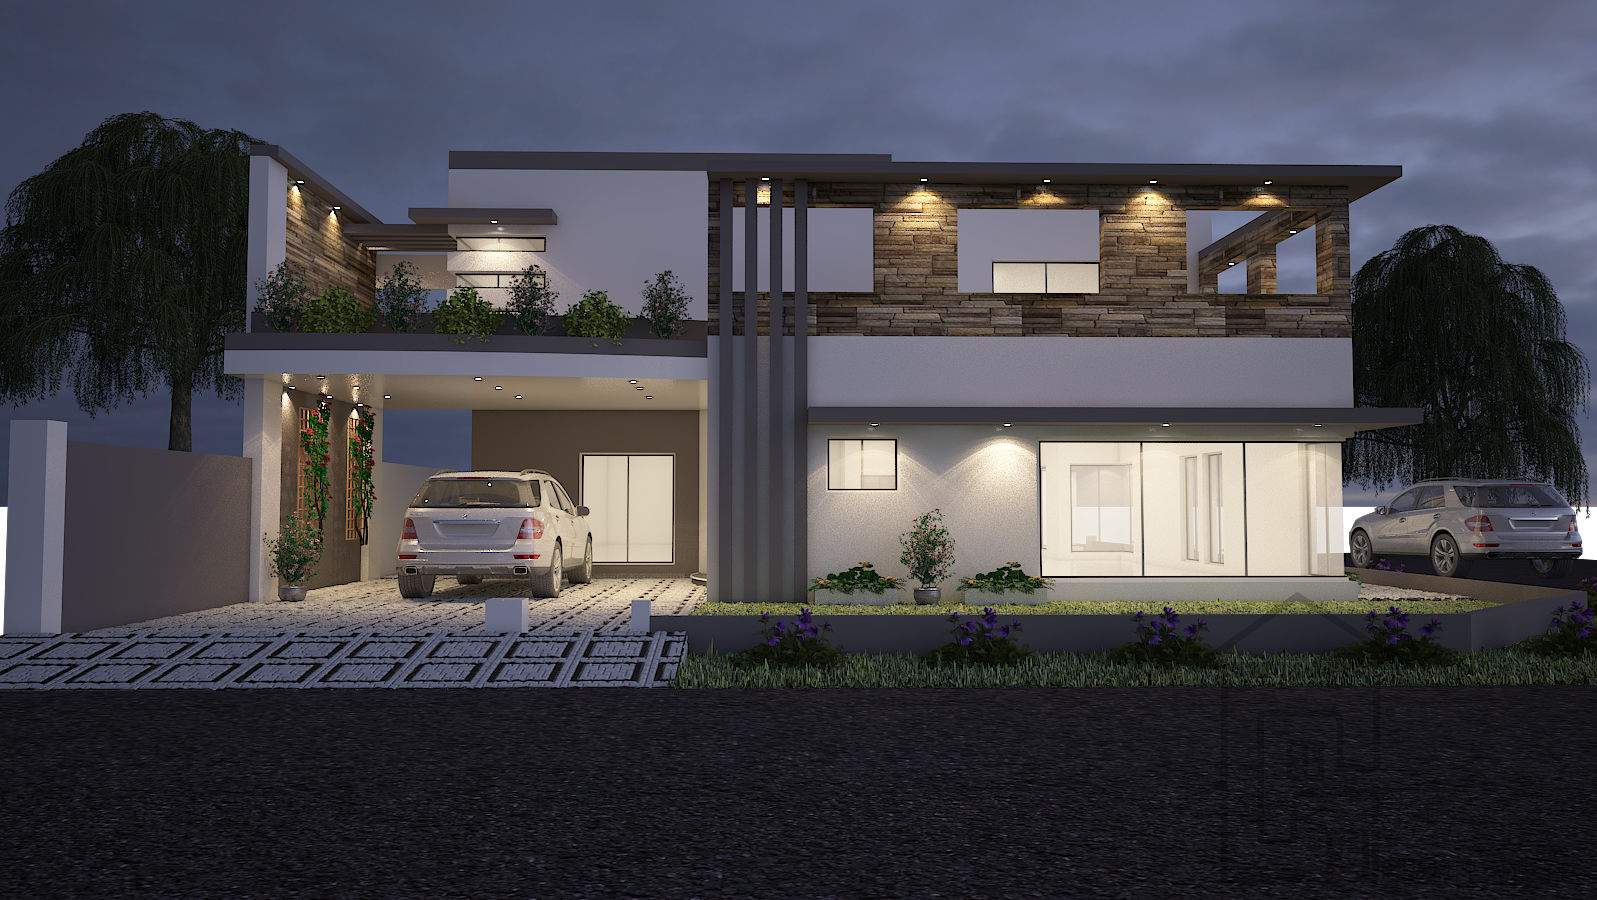 Double Storey Bungalow Elevation : House front elevation design and floor plan for double